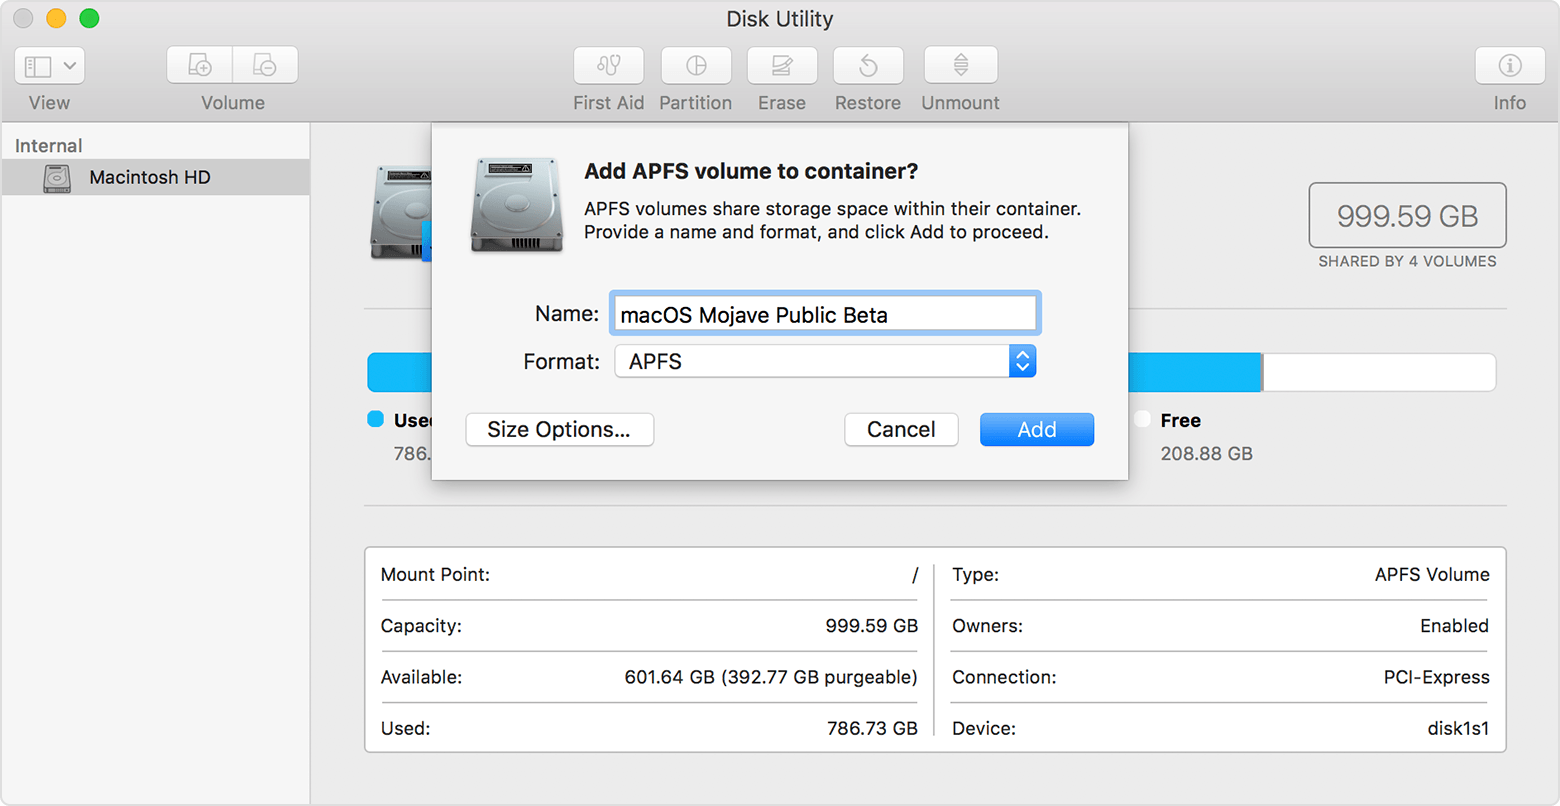 Disk Utility window, after choosing the option to create a new APFS volume. The Name field contains the words macOS Mojave Public Beta. The Format menu has APFS selected.